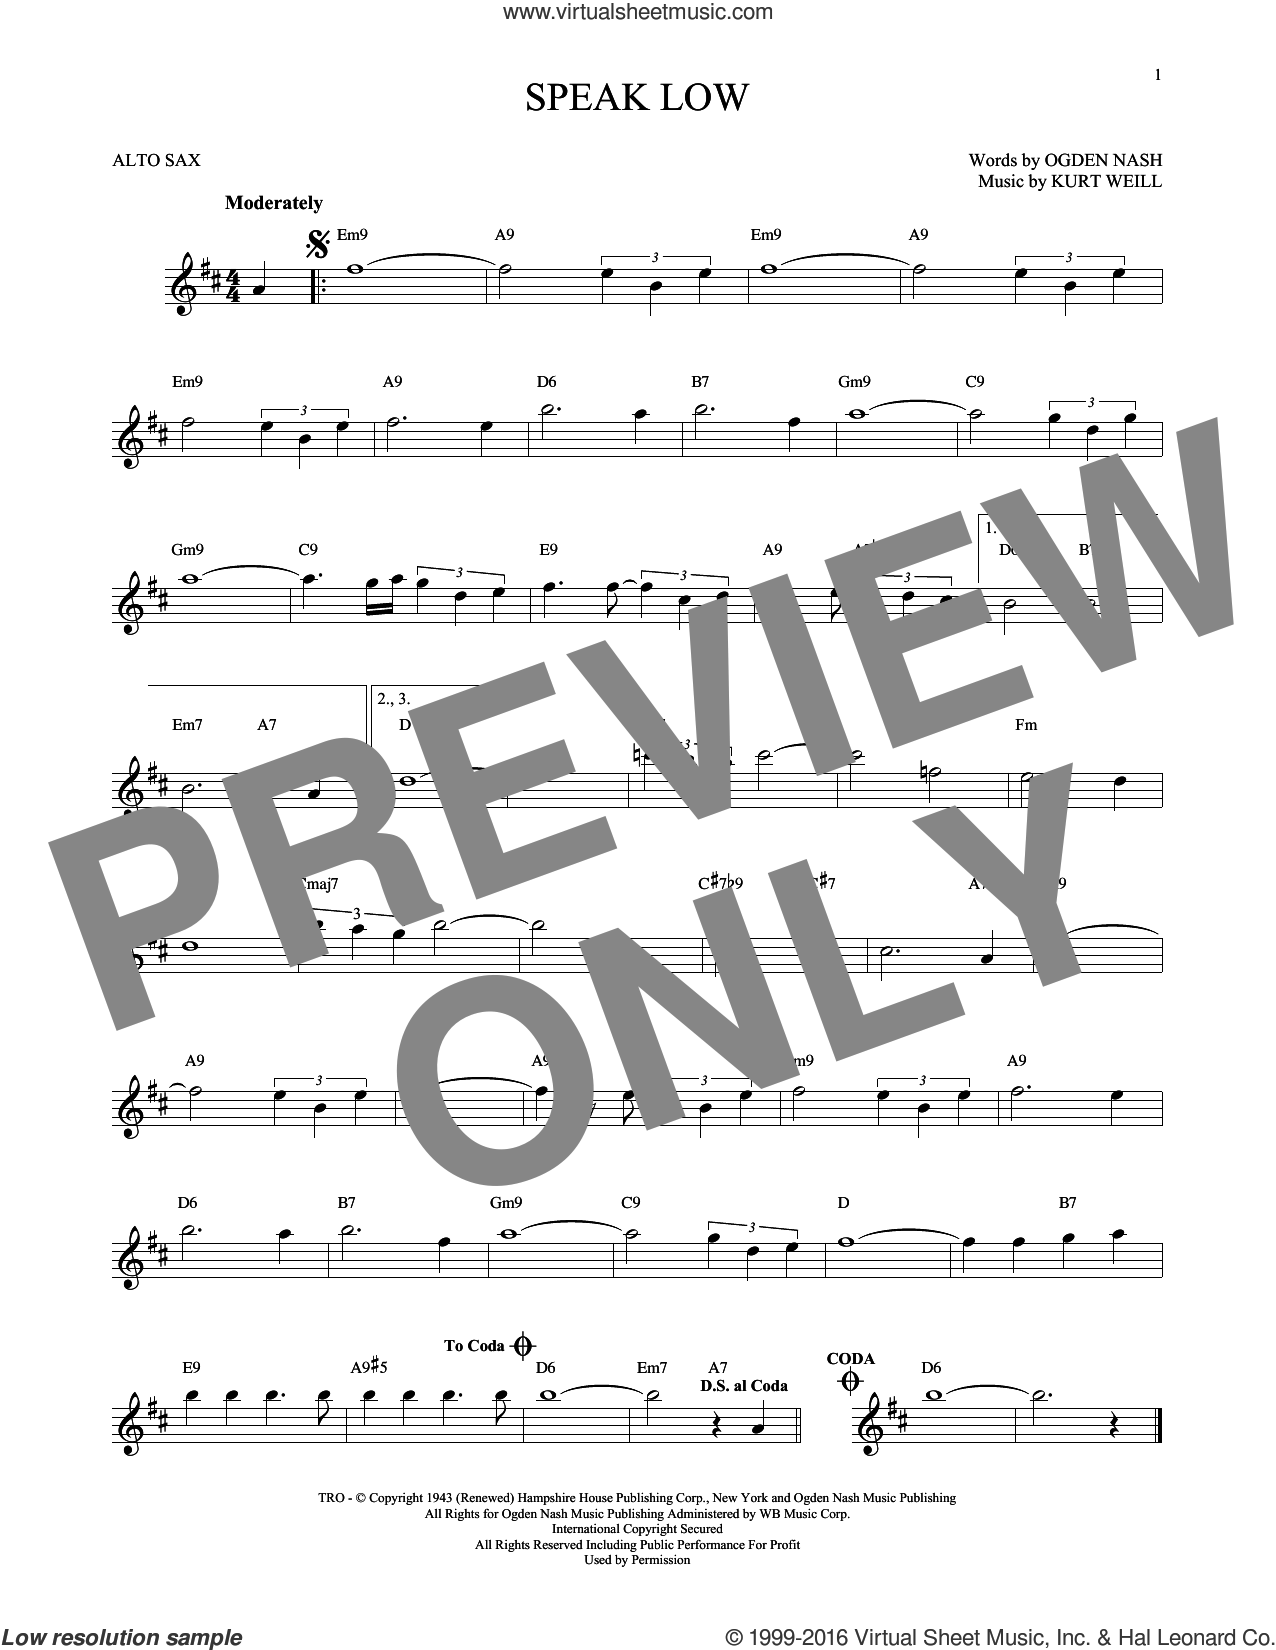 Speak Low sheet music for alto saxophone solo by Kurt Weill and Ogden Nash, intermediate skill level